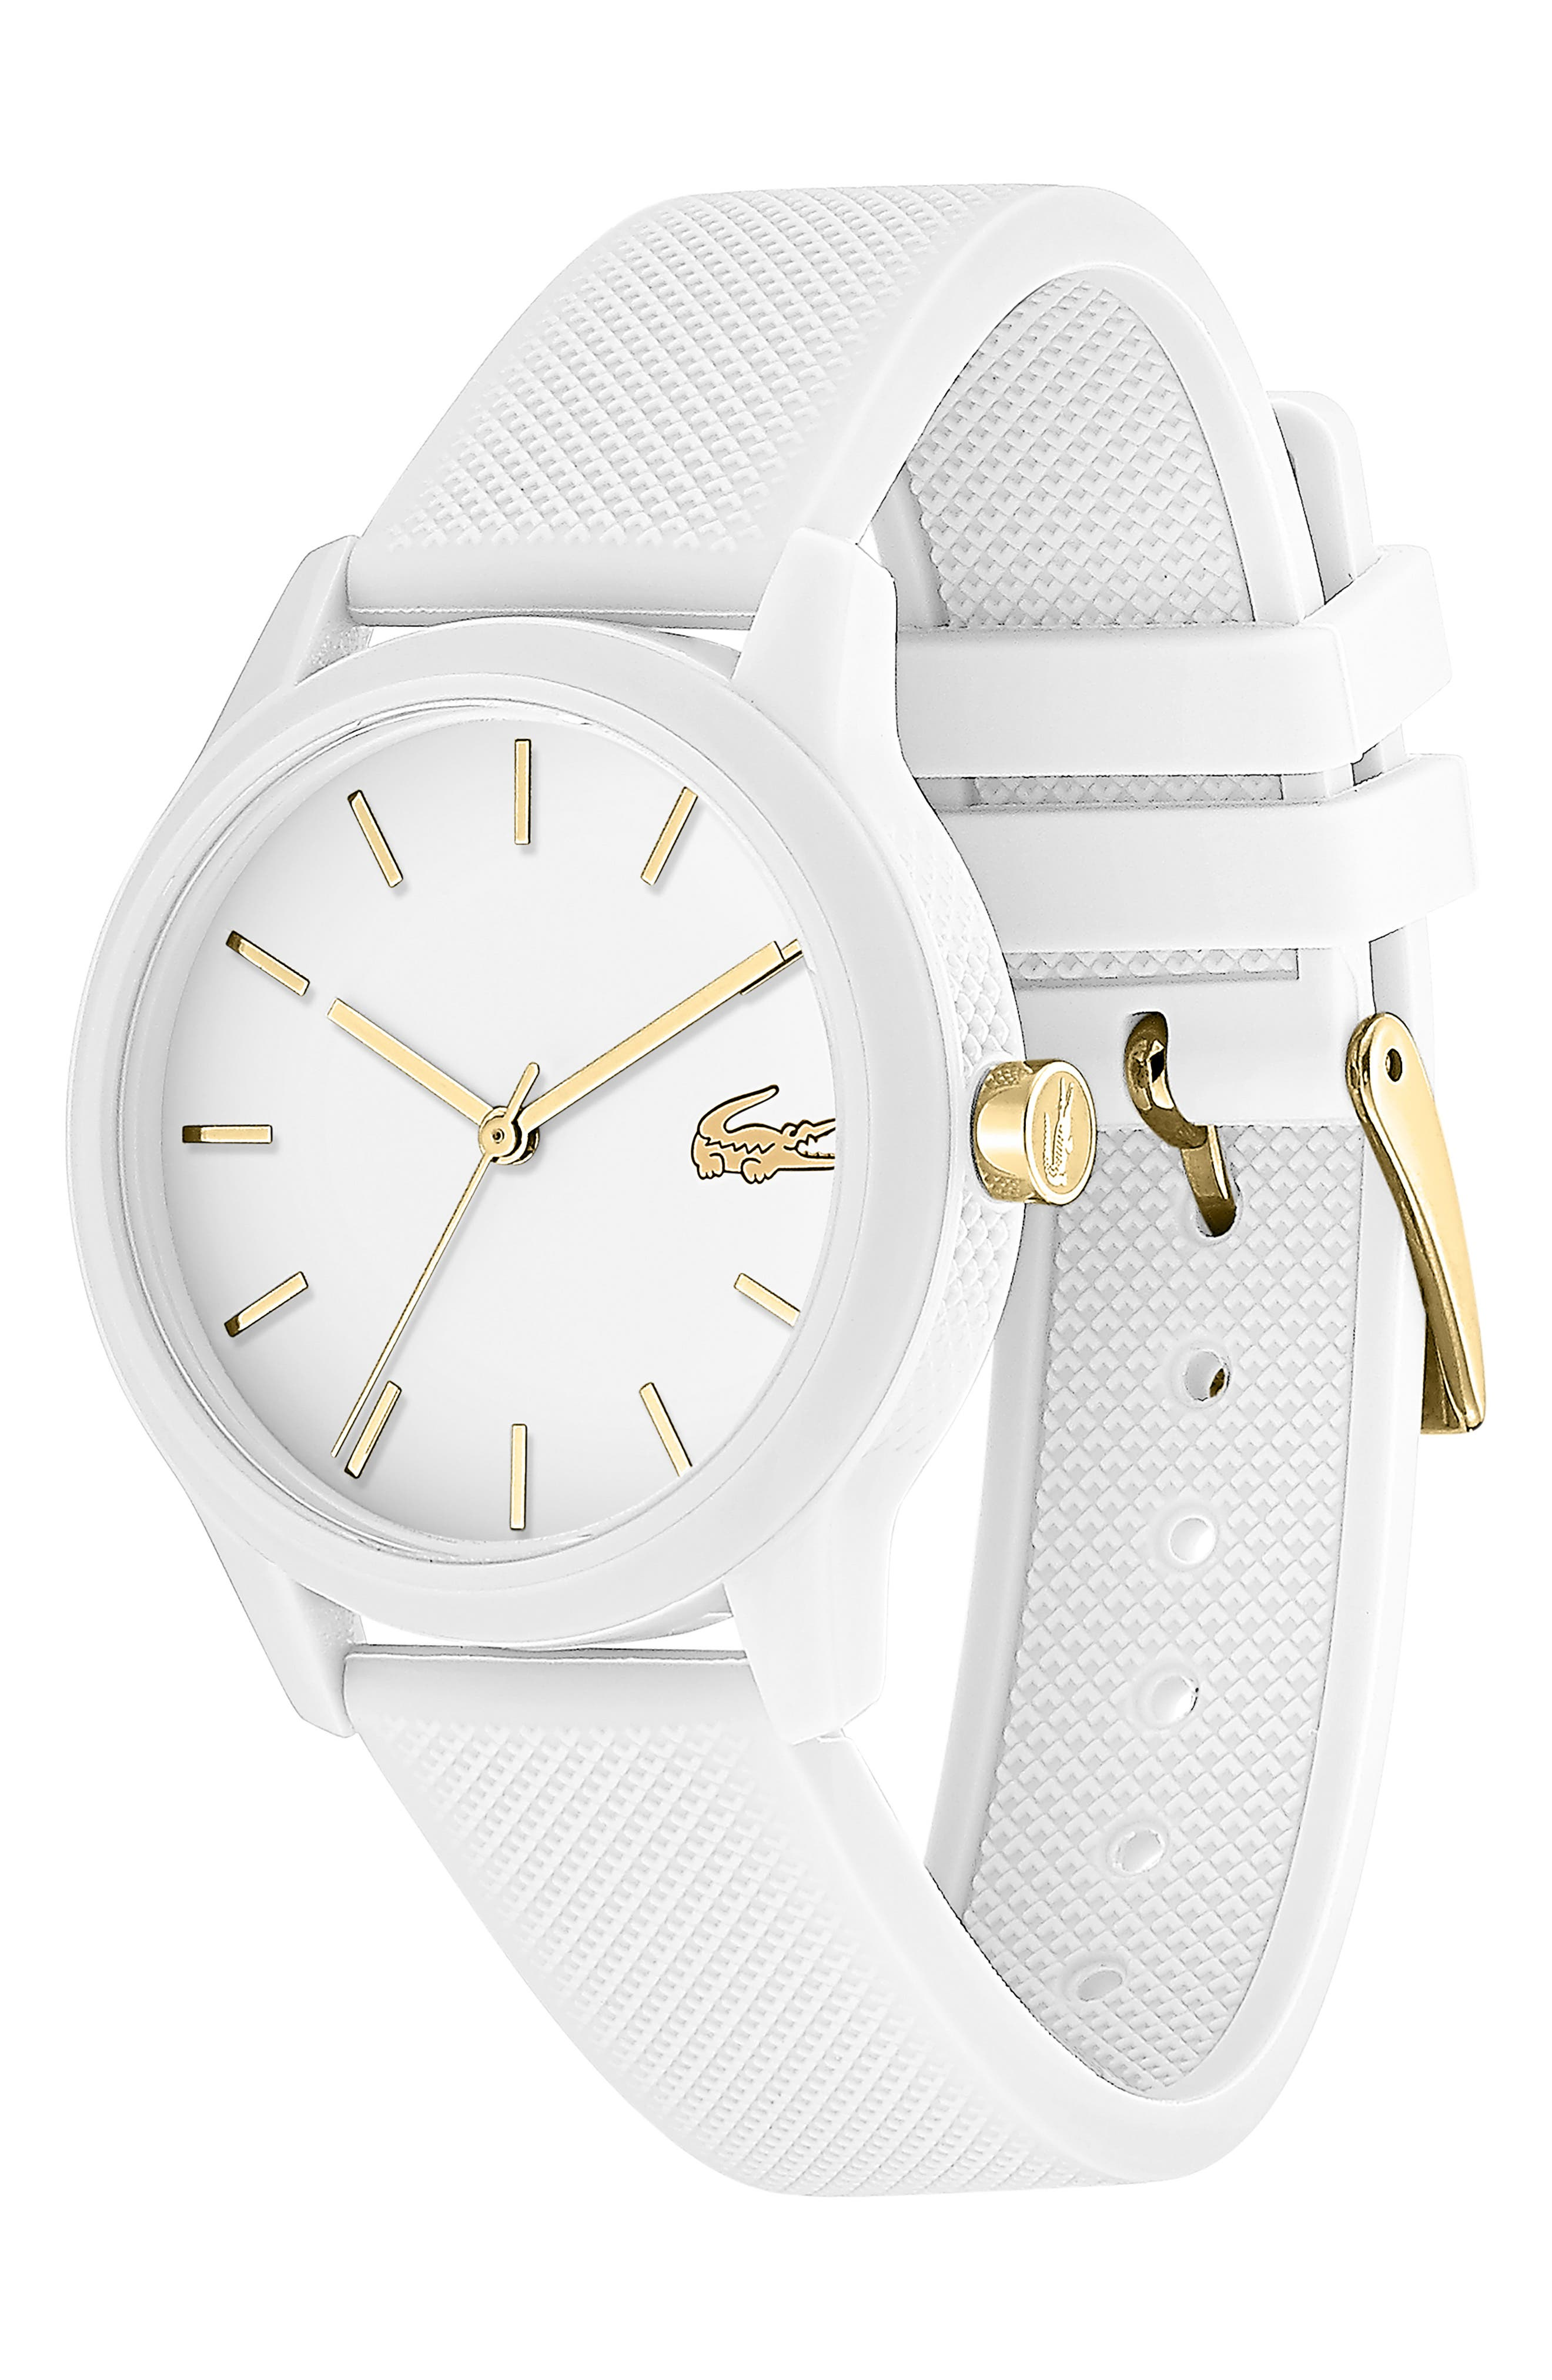 LACOSTE, 12.12 Silicone Strap Watch, 36mm, Alternate thumbnail 3, color, WHITE